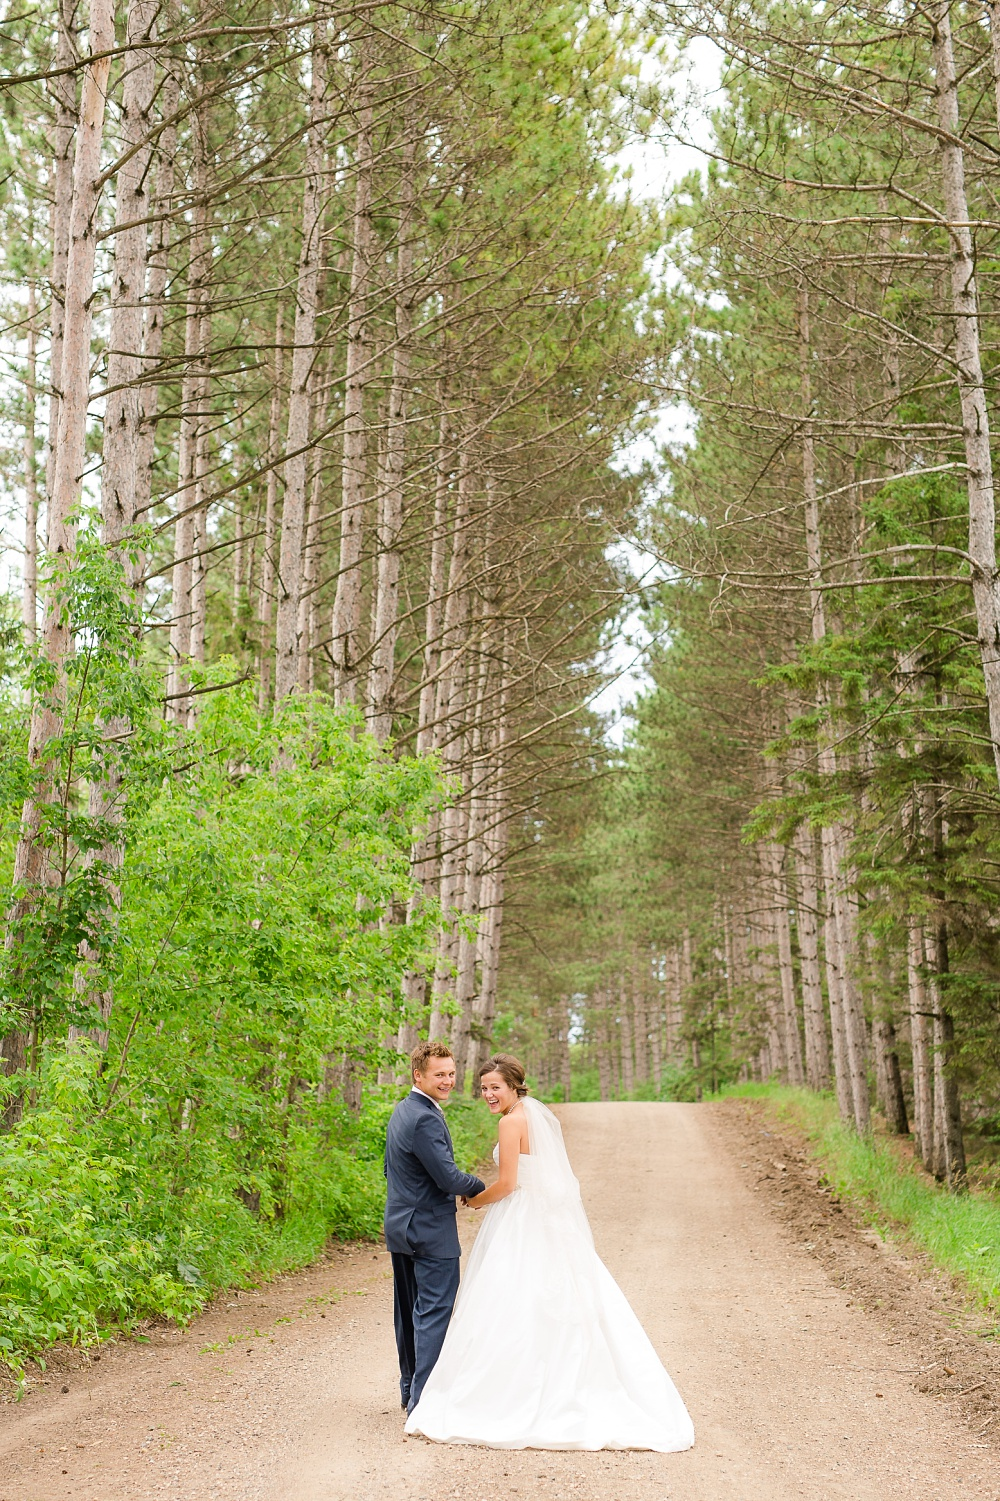 Wolf Lake, MN Country Styled Wedding, White Dress, Blue Suite | Photographed by Amber Langerud Photography | Bride & Groom Looking Back at Camera